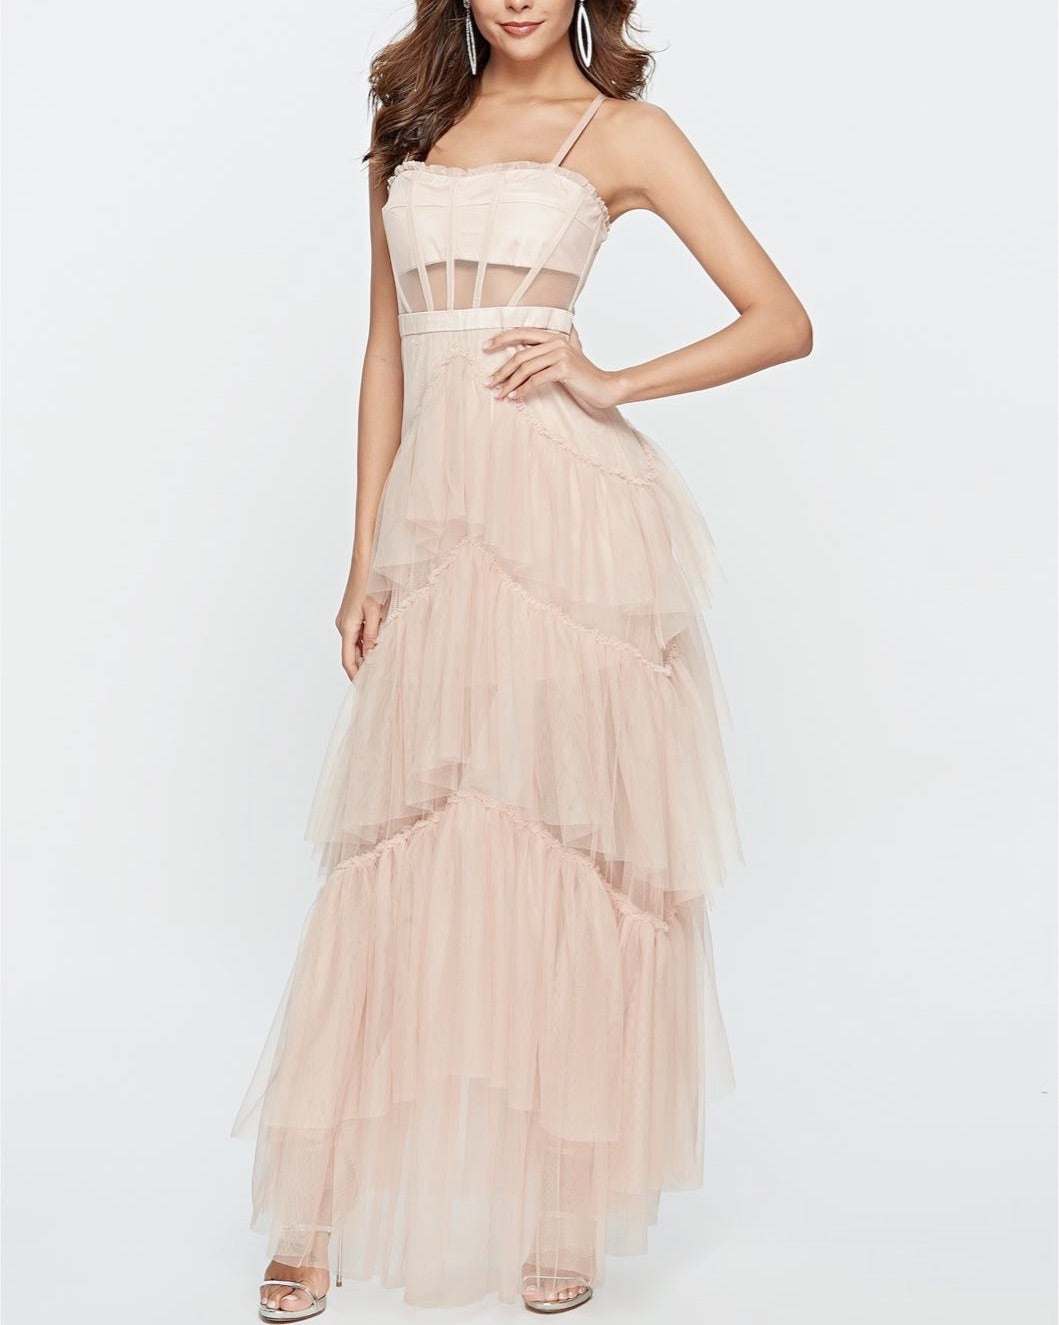 Jane Tulle Beige Layered Dress